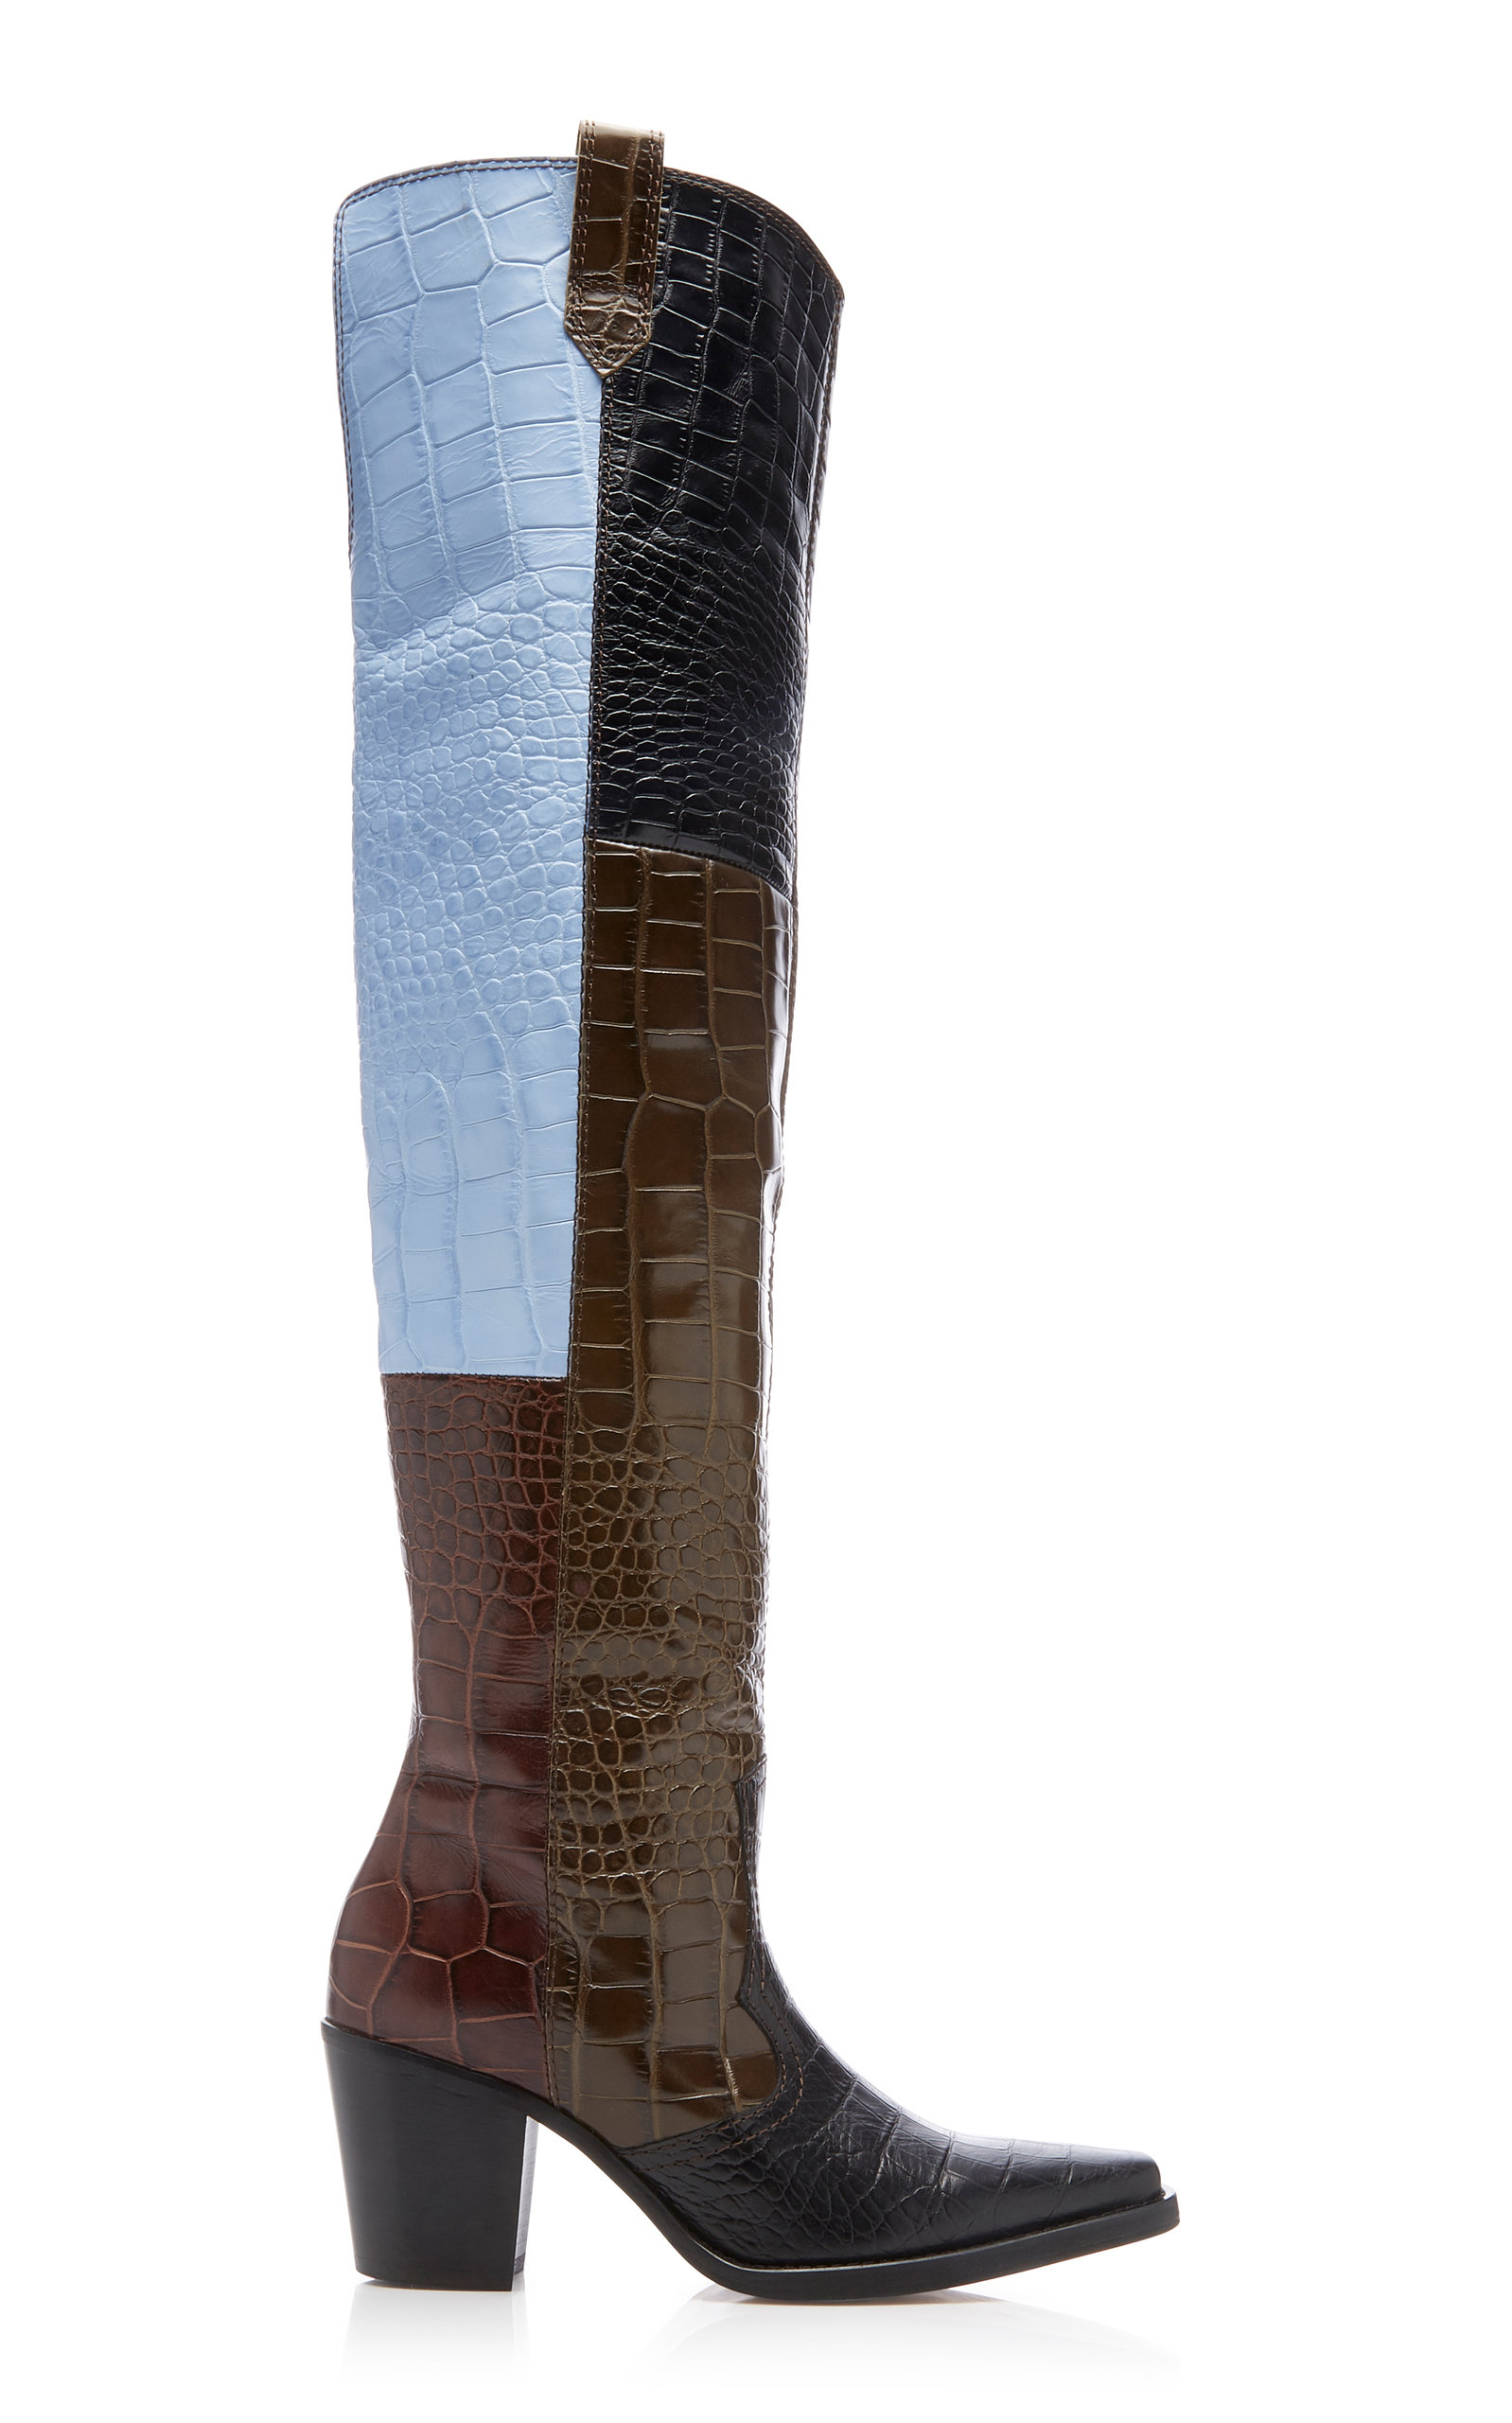 Ganni Boots PANELED CROC-EFFECT LEATHER OVER-THE-KNEE BOOTS